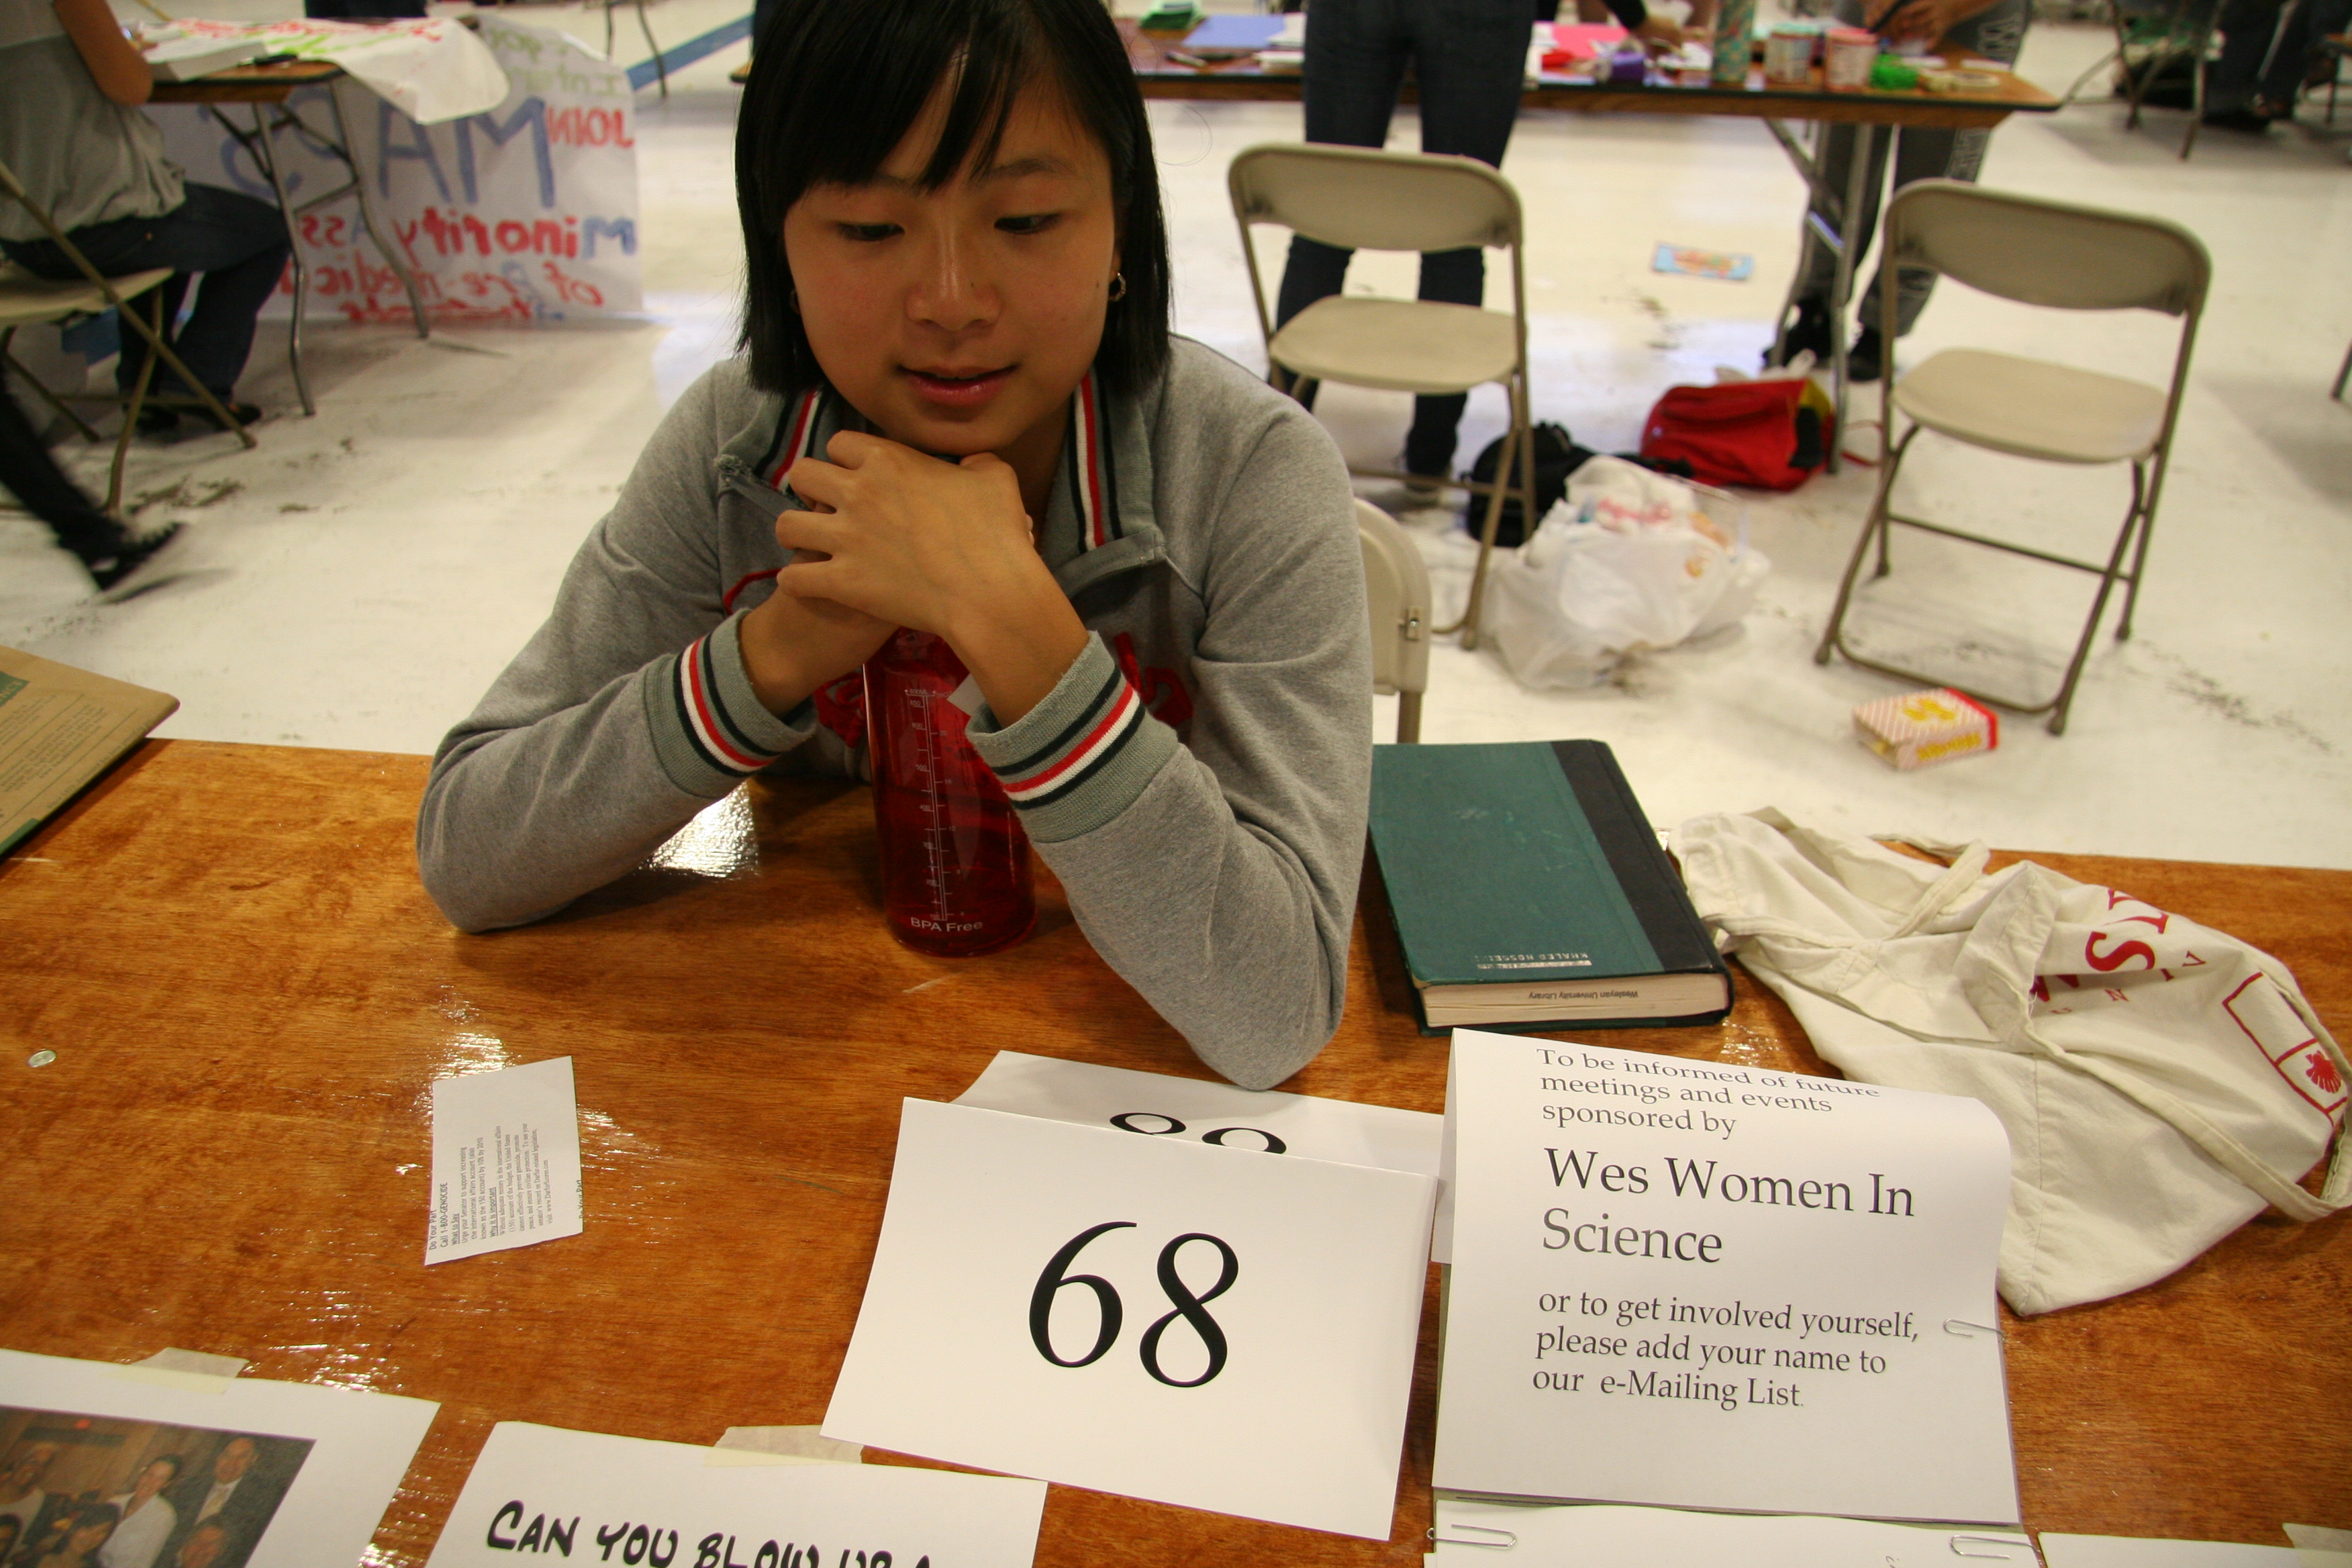 Shuk Kei Cheng '09 encourages Wesleyan students to join Wesleyan's Women in Science club.